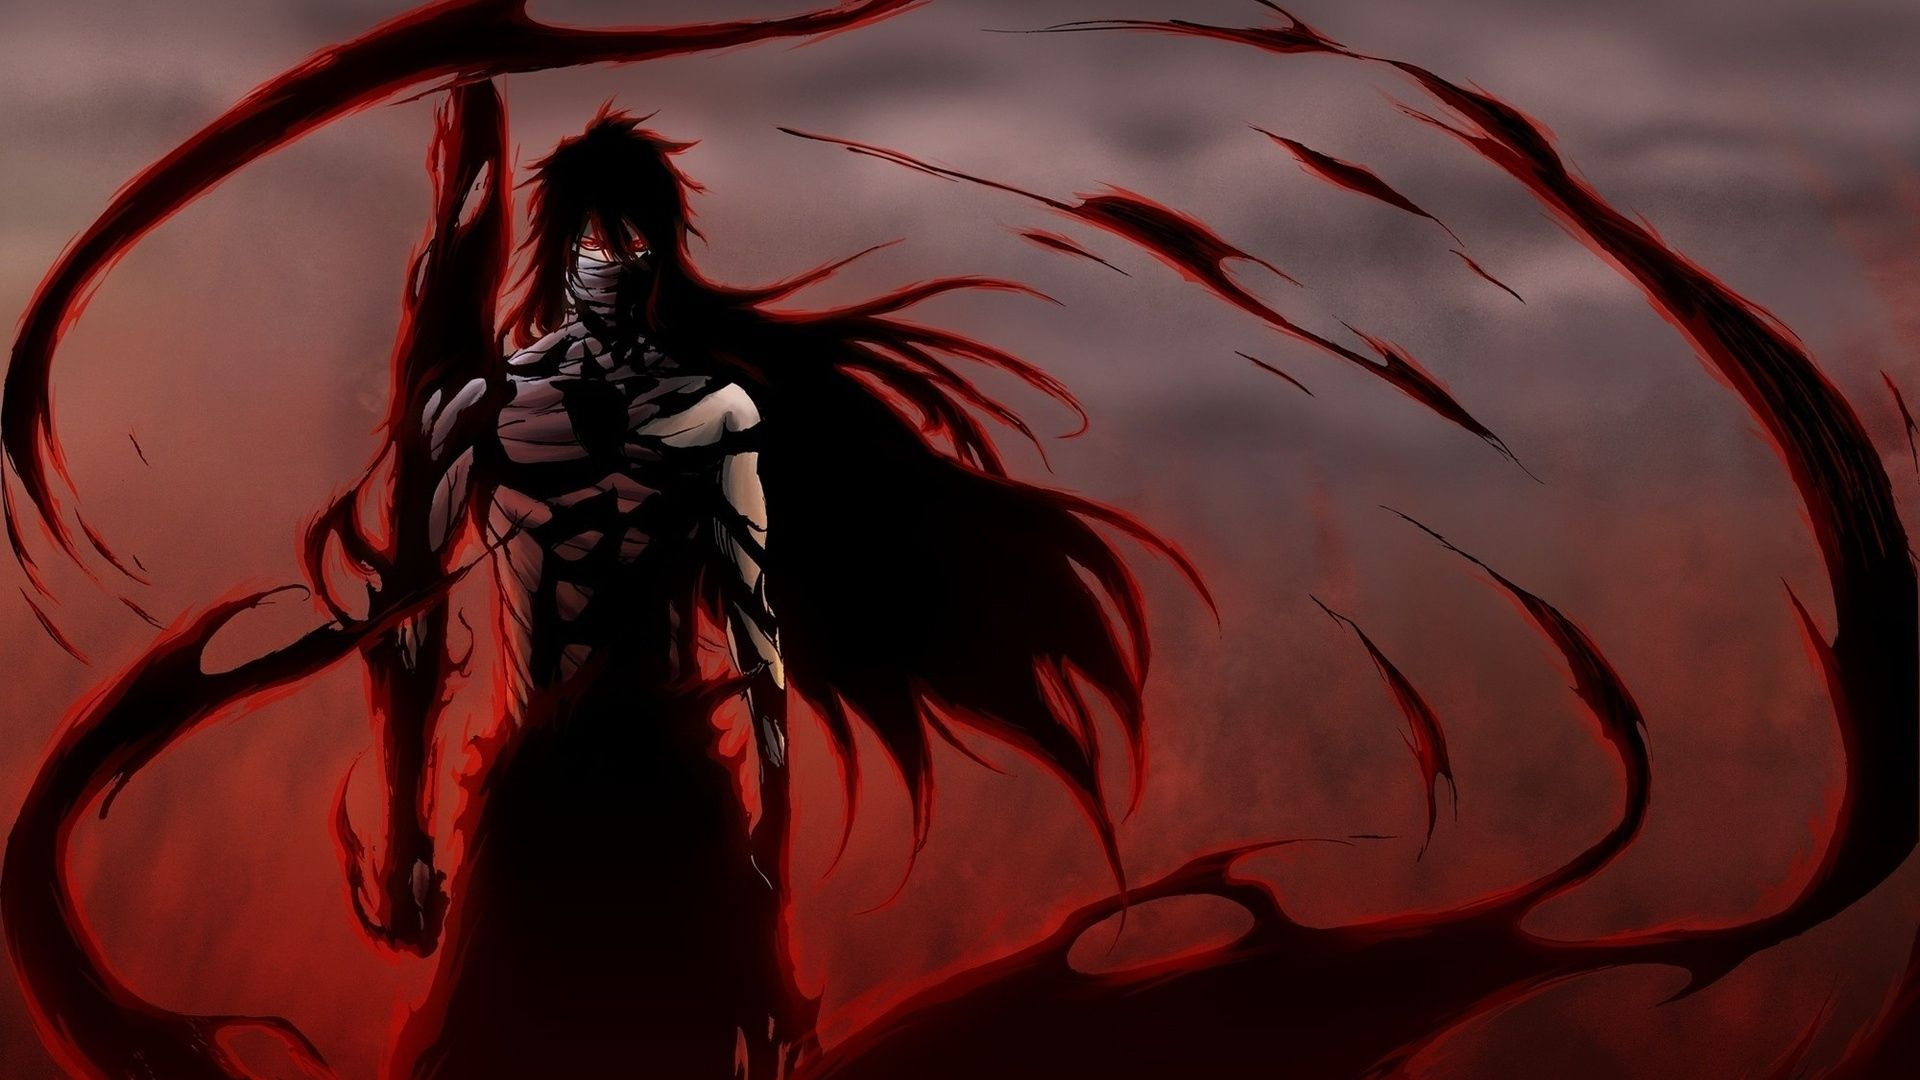 Bleach Downloads Download Wallpaper 1920x1080 Anime Bleach Ichego Posture Wind